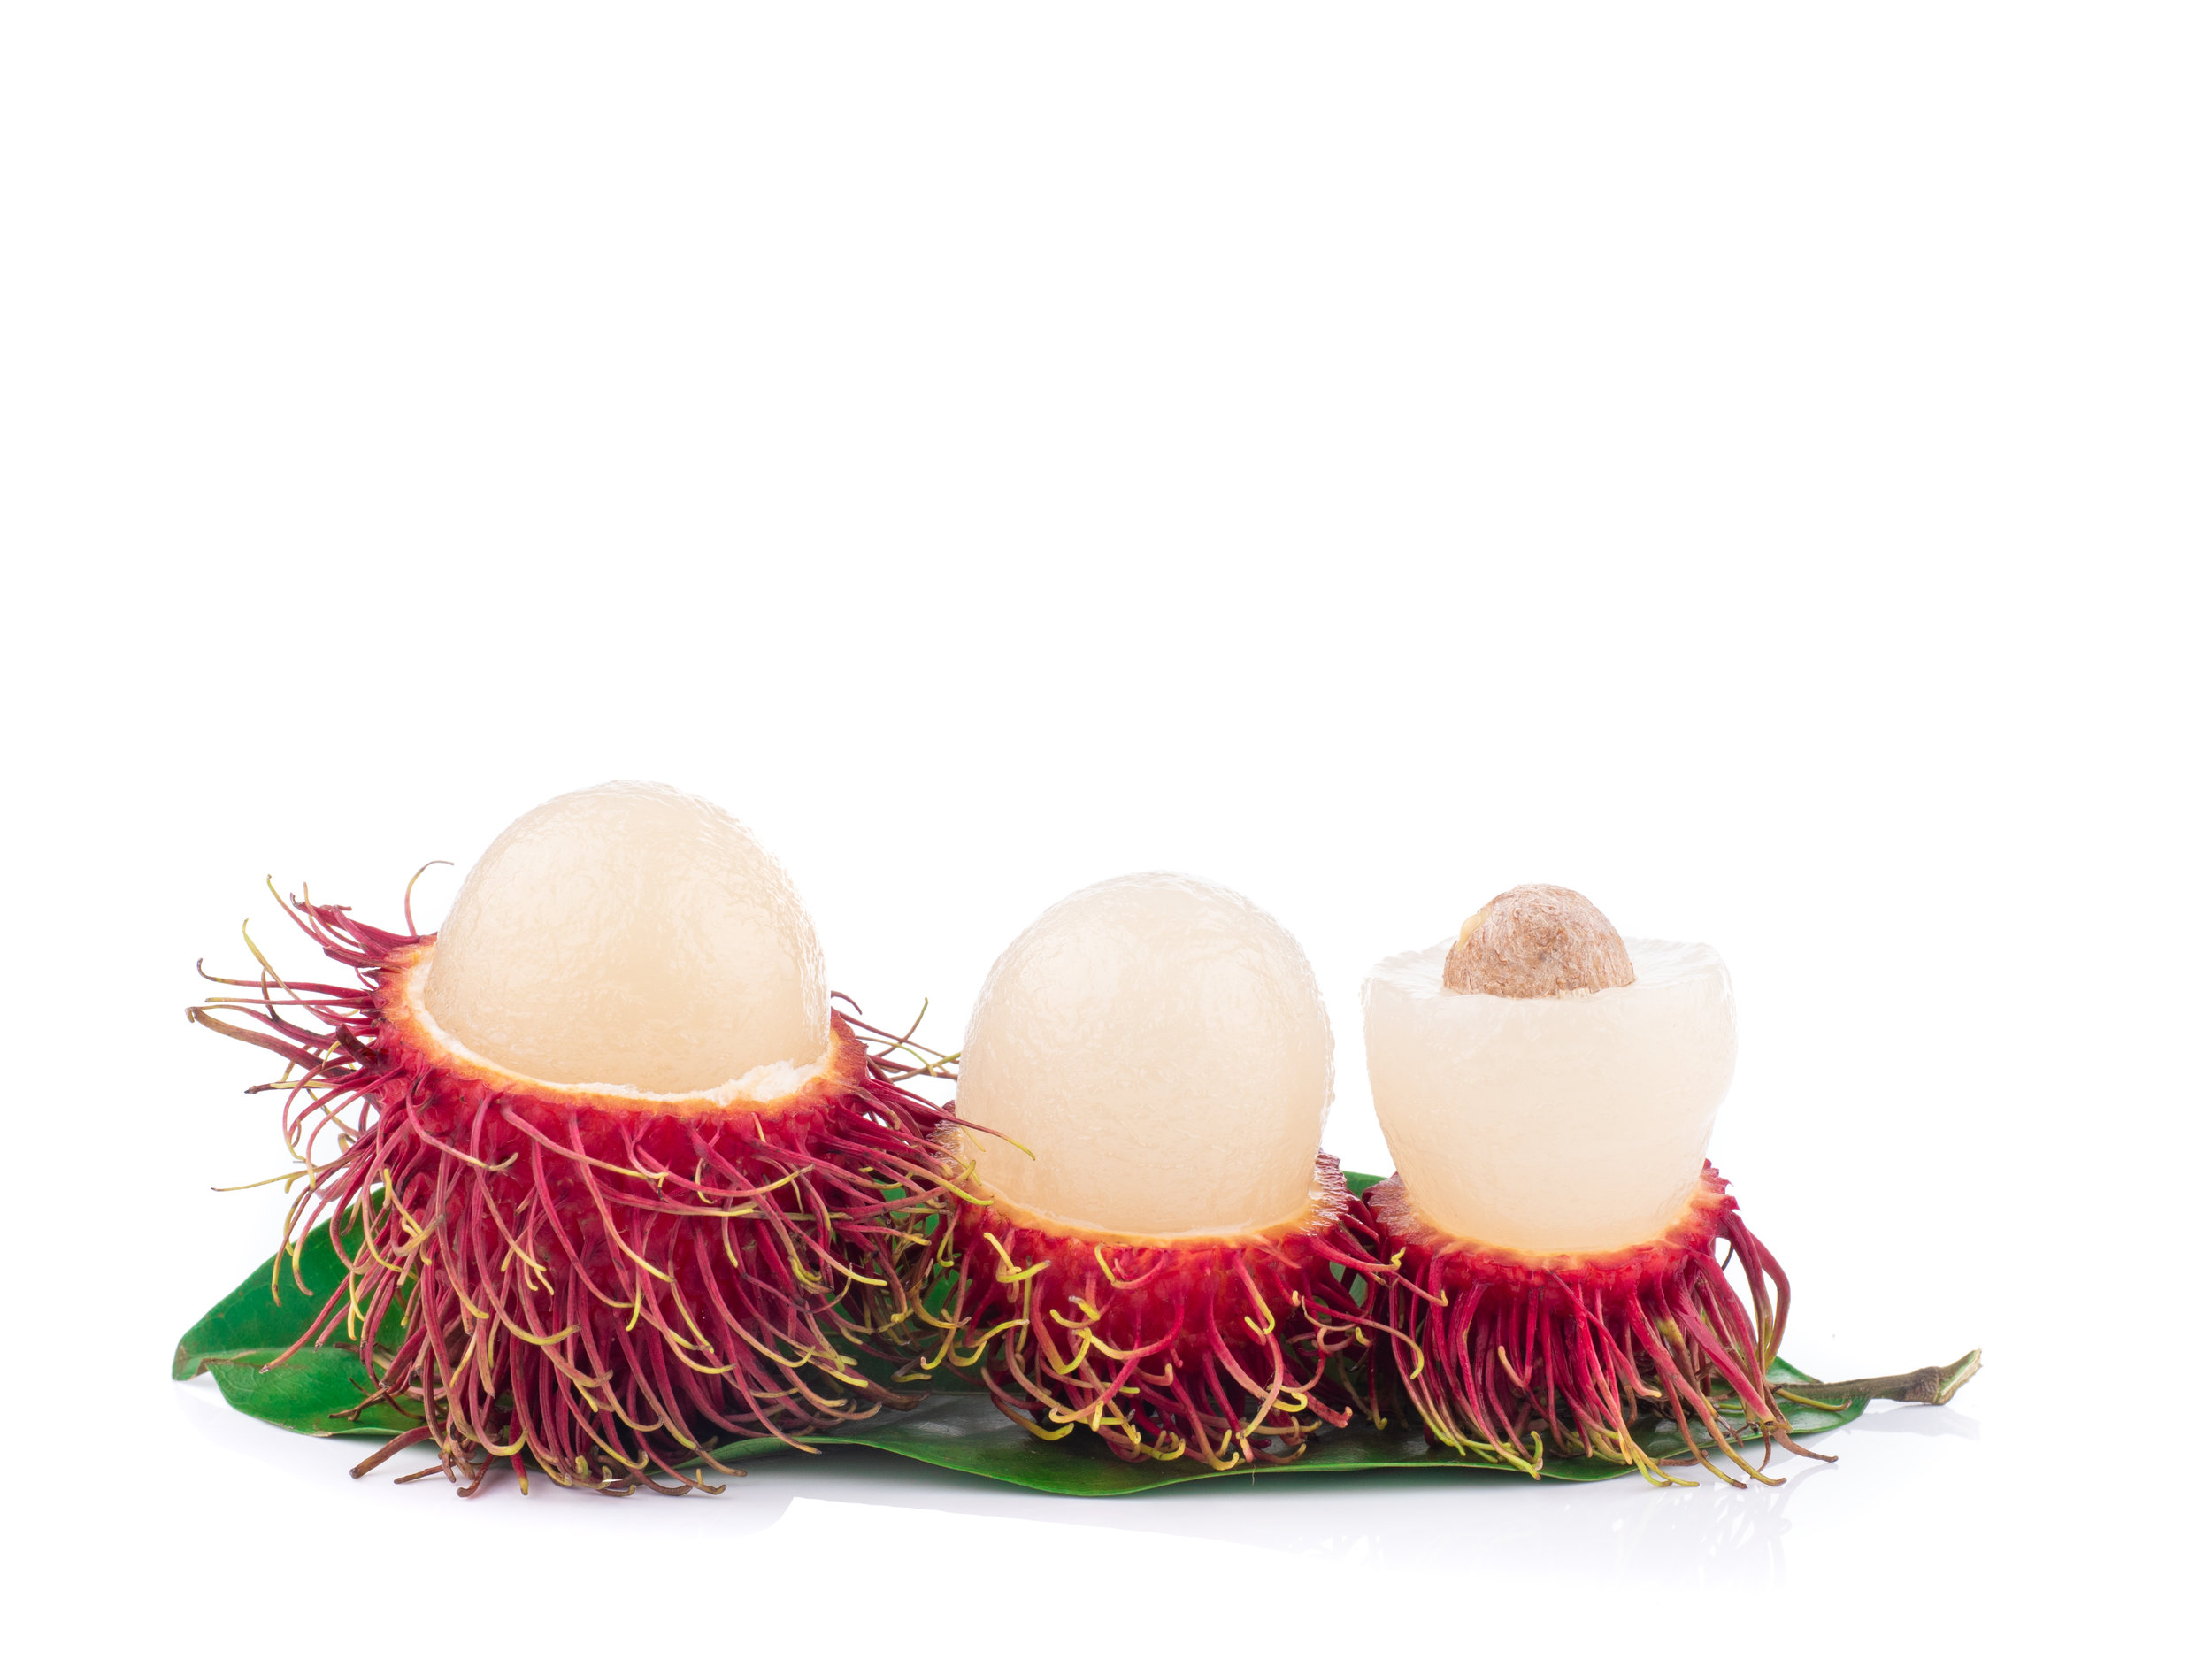 rambutan photo open.jpg